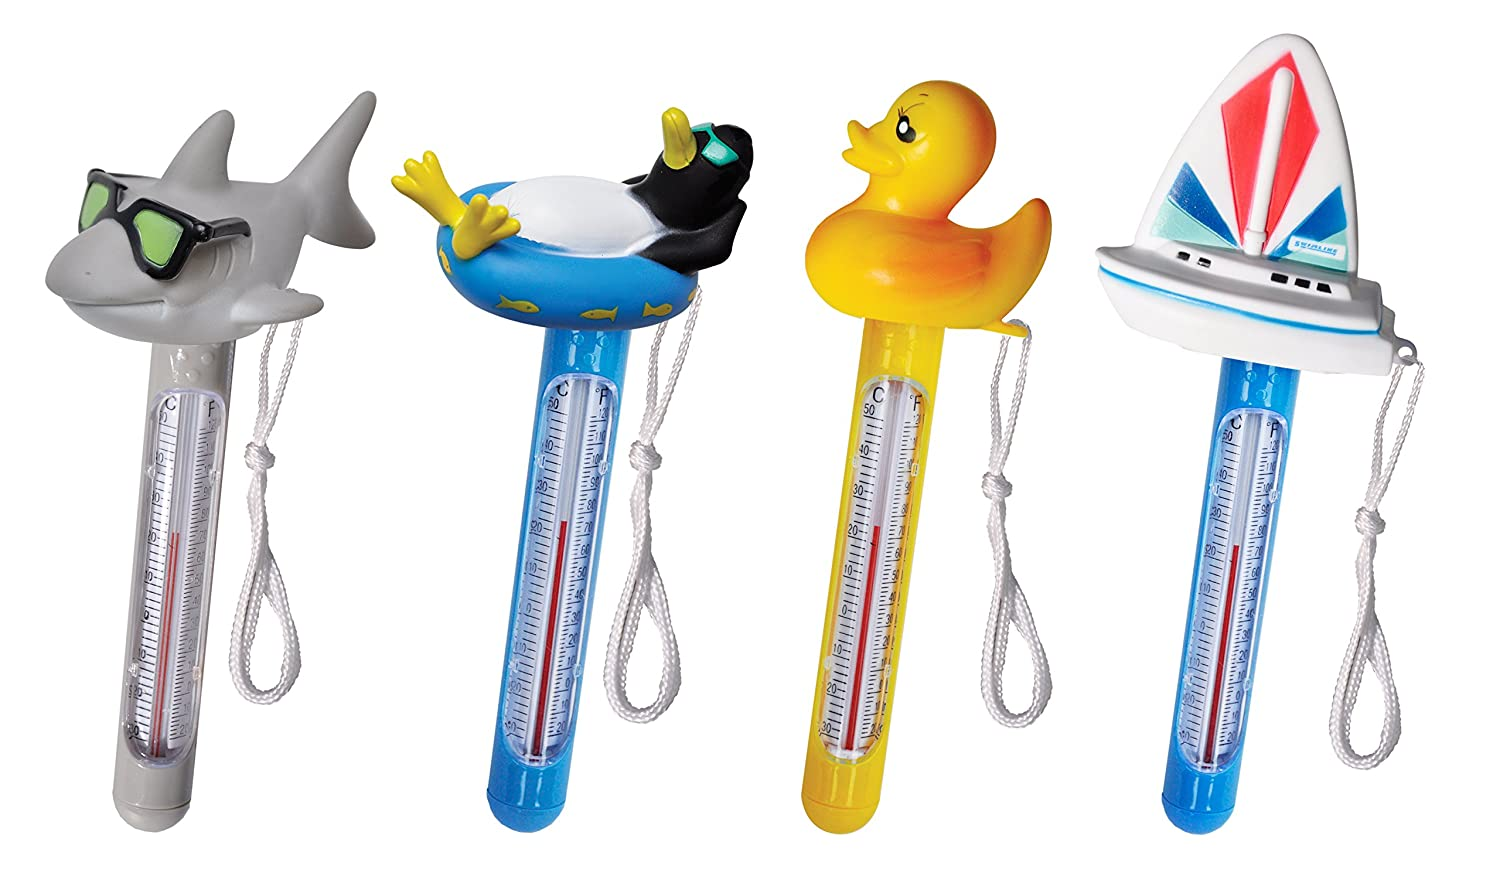 Solstice by International Leisure Products Hydro Tools 9225 Soft Top Floating Pool Thermometer, Single Assorted